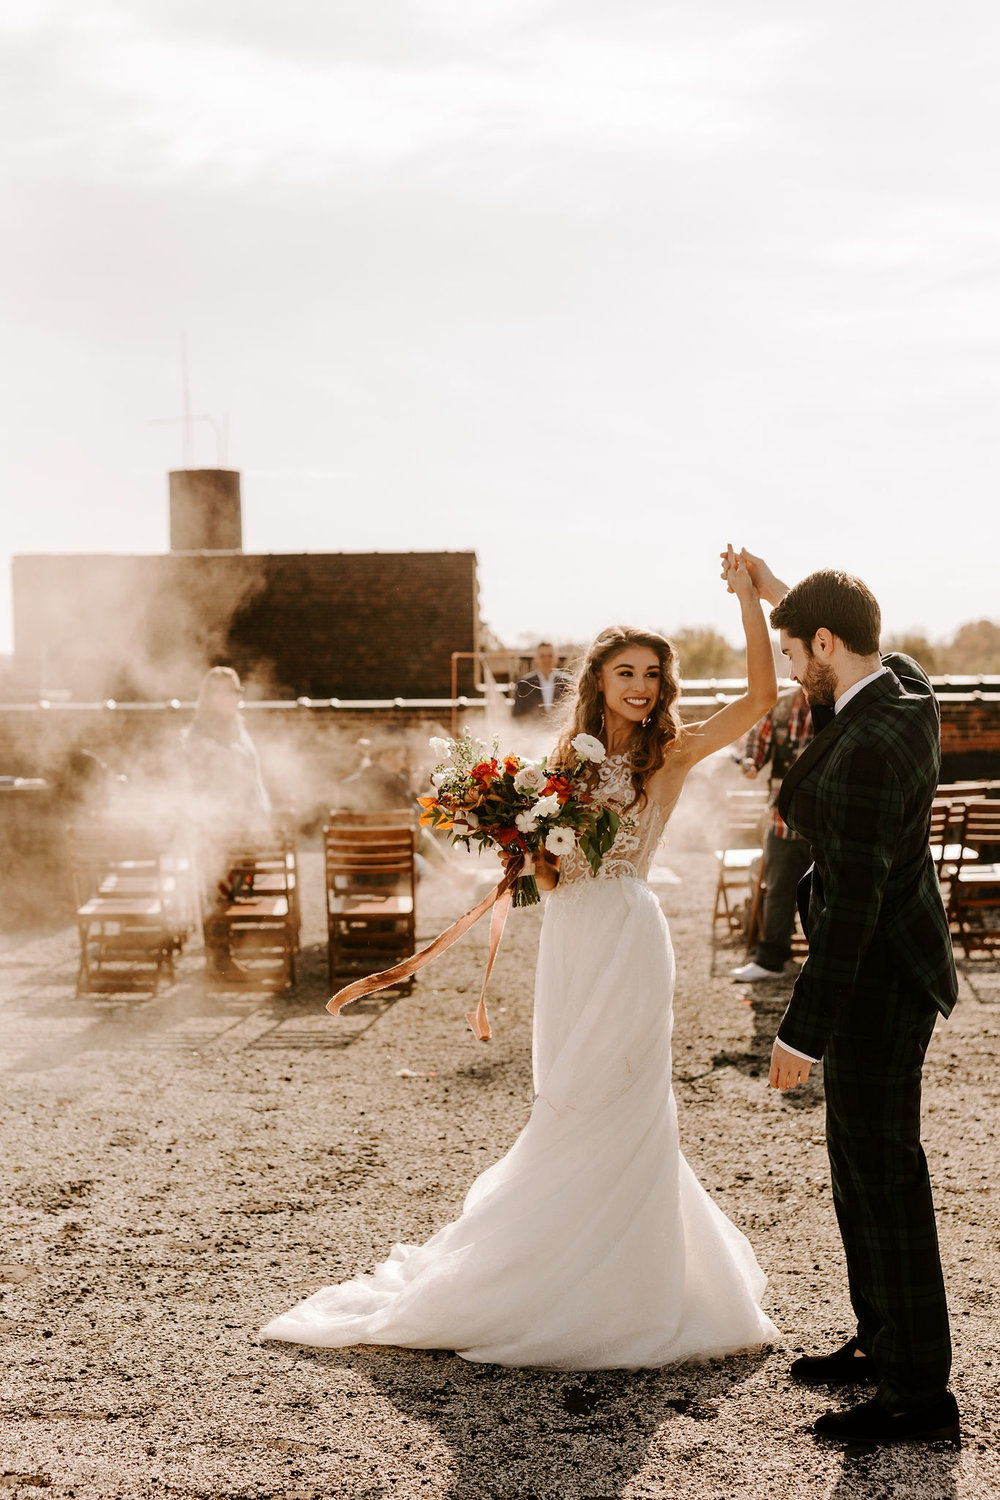 Featured on  So This Is Love   Photography by Mann and Wife Photography, Visual Storytellers